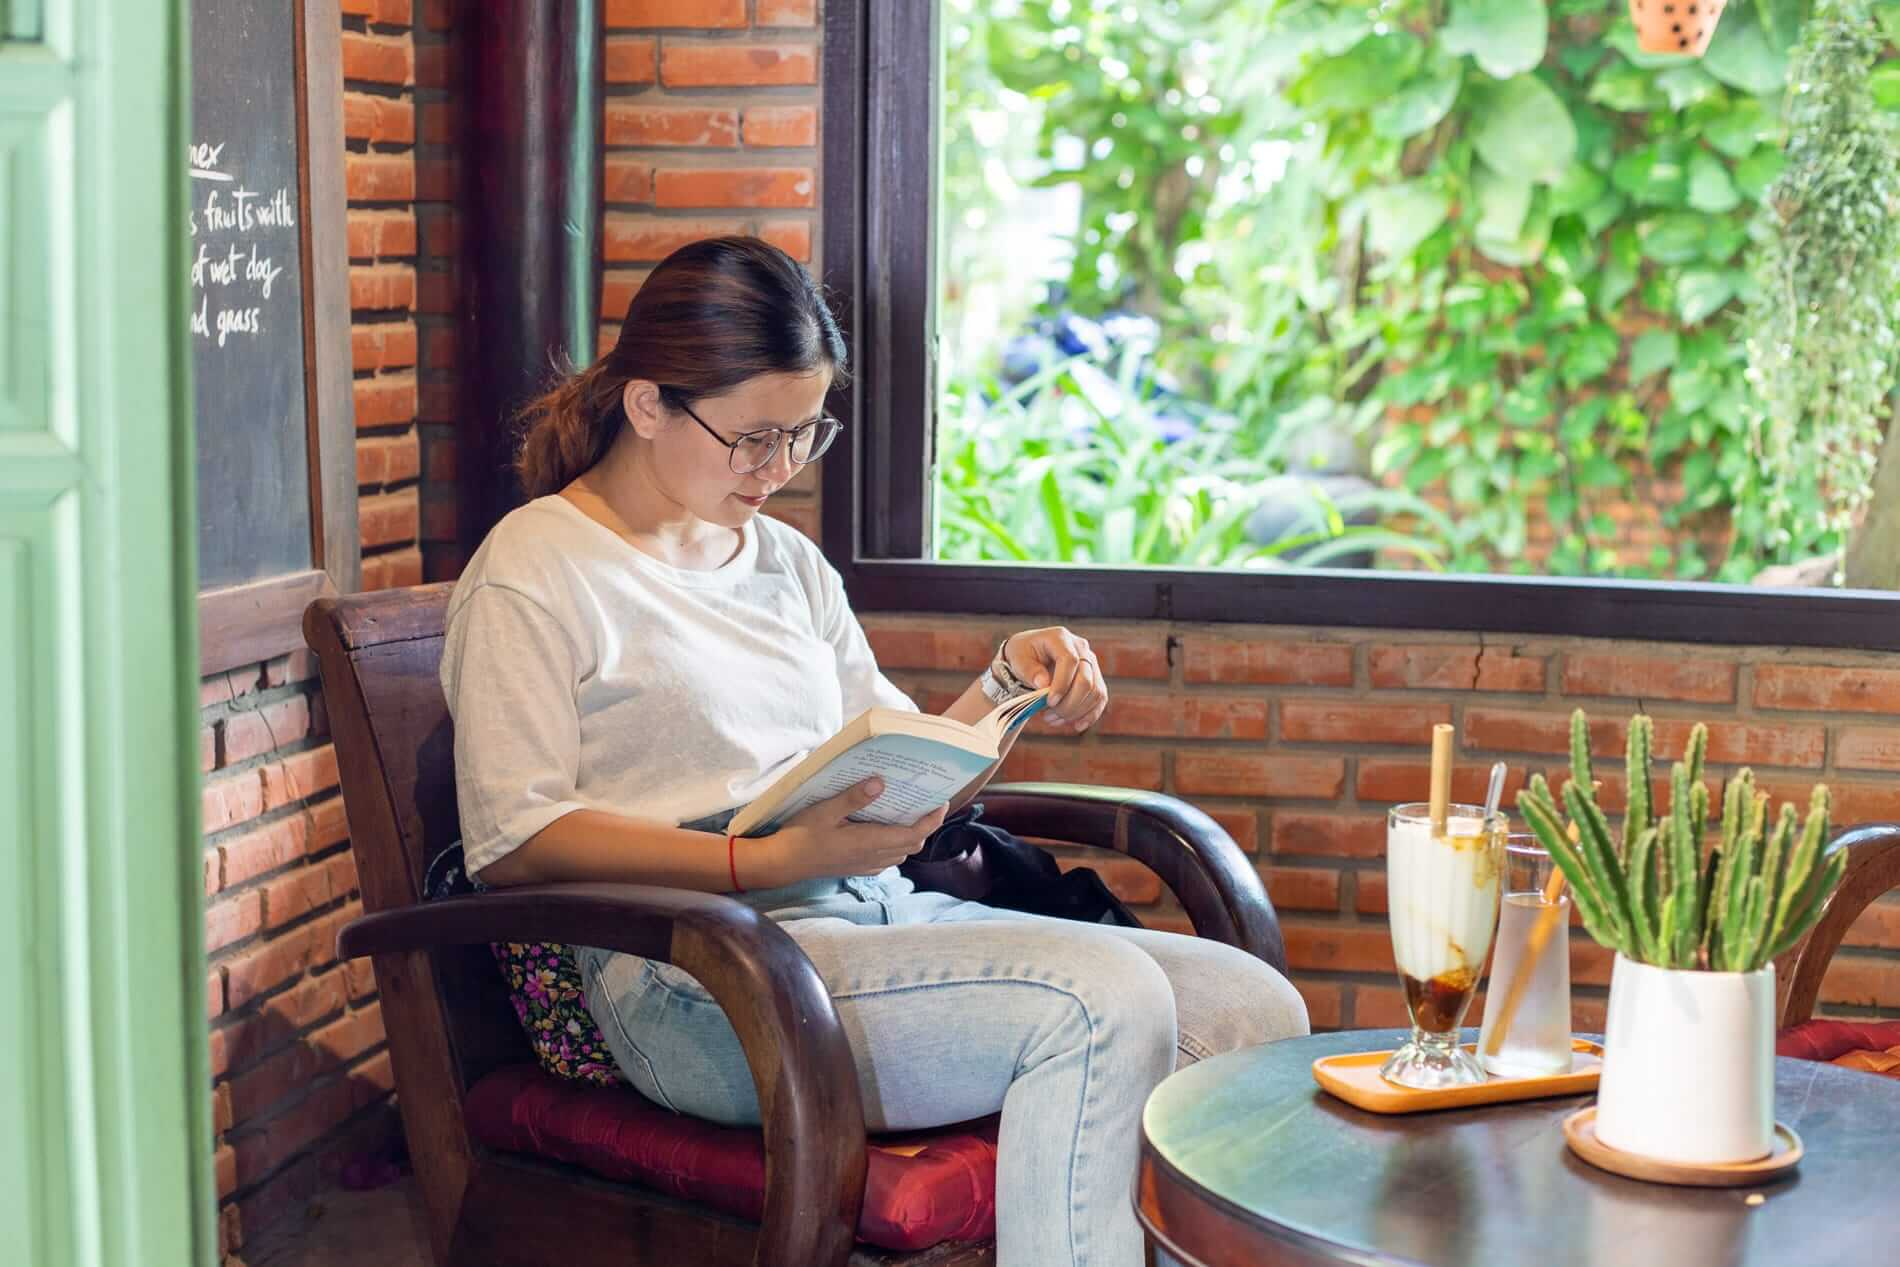 Khieu comes to Sound of Silence to read - What to do in Hoi An